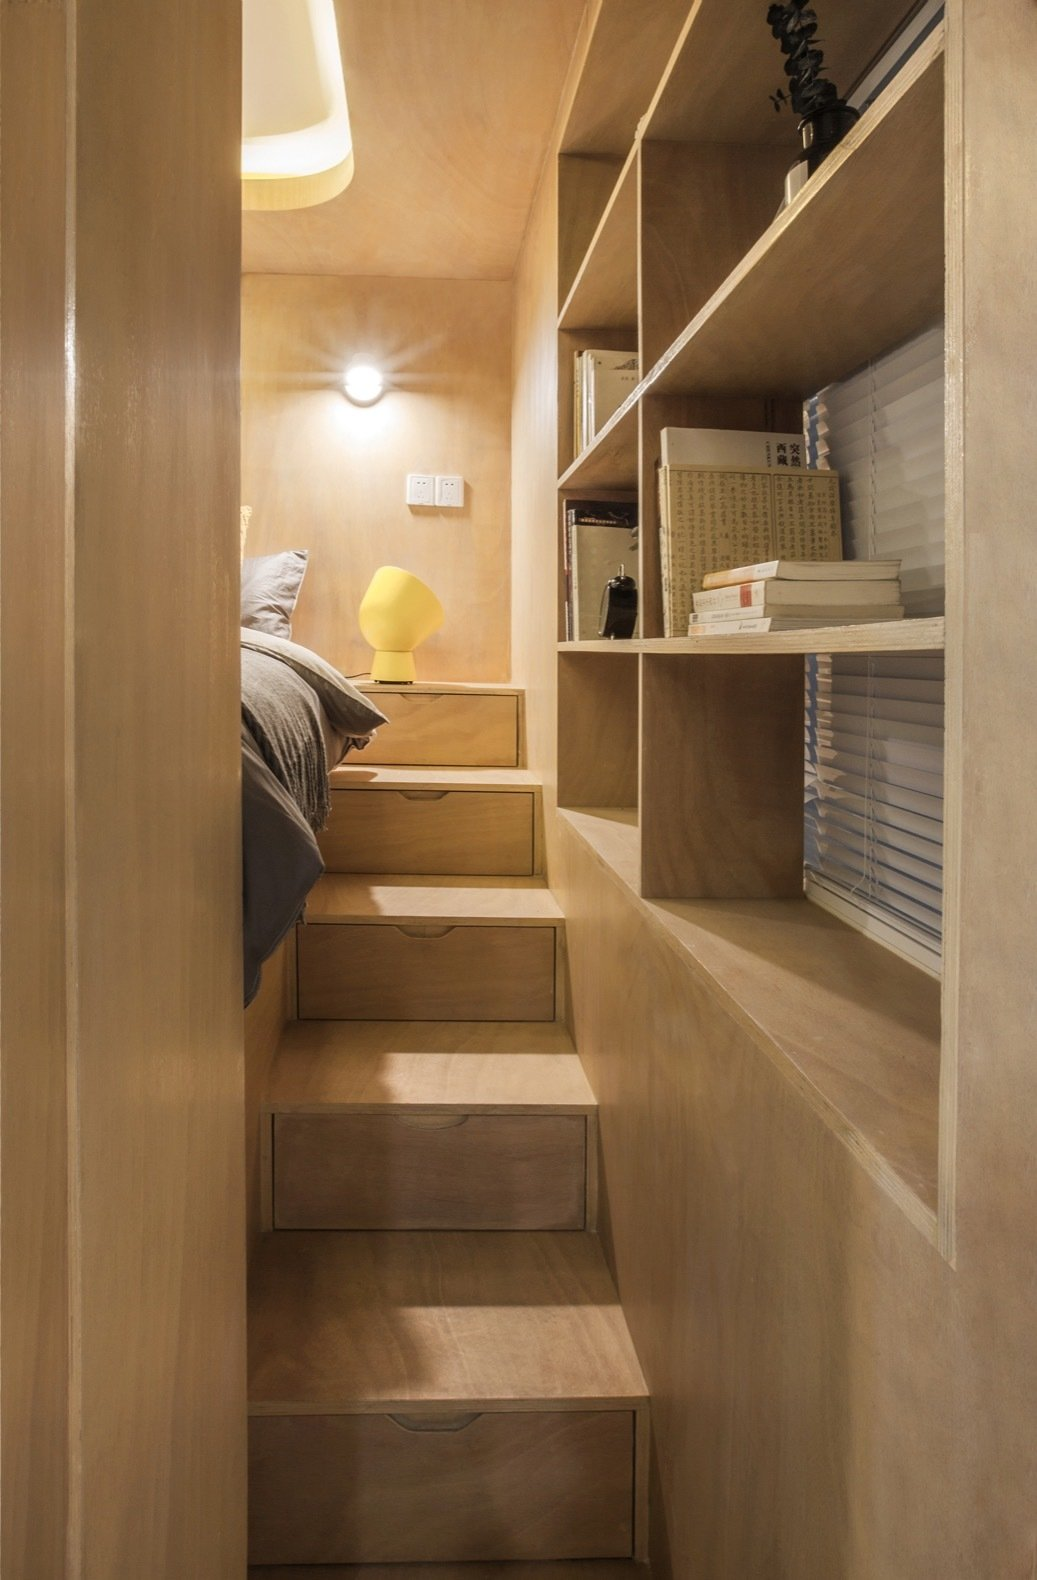 Bedroom, Shelves, Bed, Medium Hardwood Floor, Table Lighting, and Wall Lighting The second staircase is skinnier and sandwiched between the bed and window.    Photos from Rotated Volumes Cleverly Maximize Space in a Tiny Shanghai Apartment